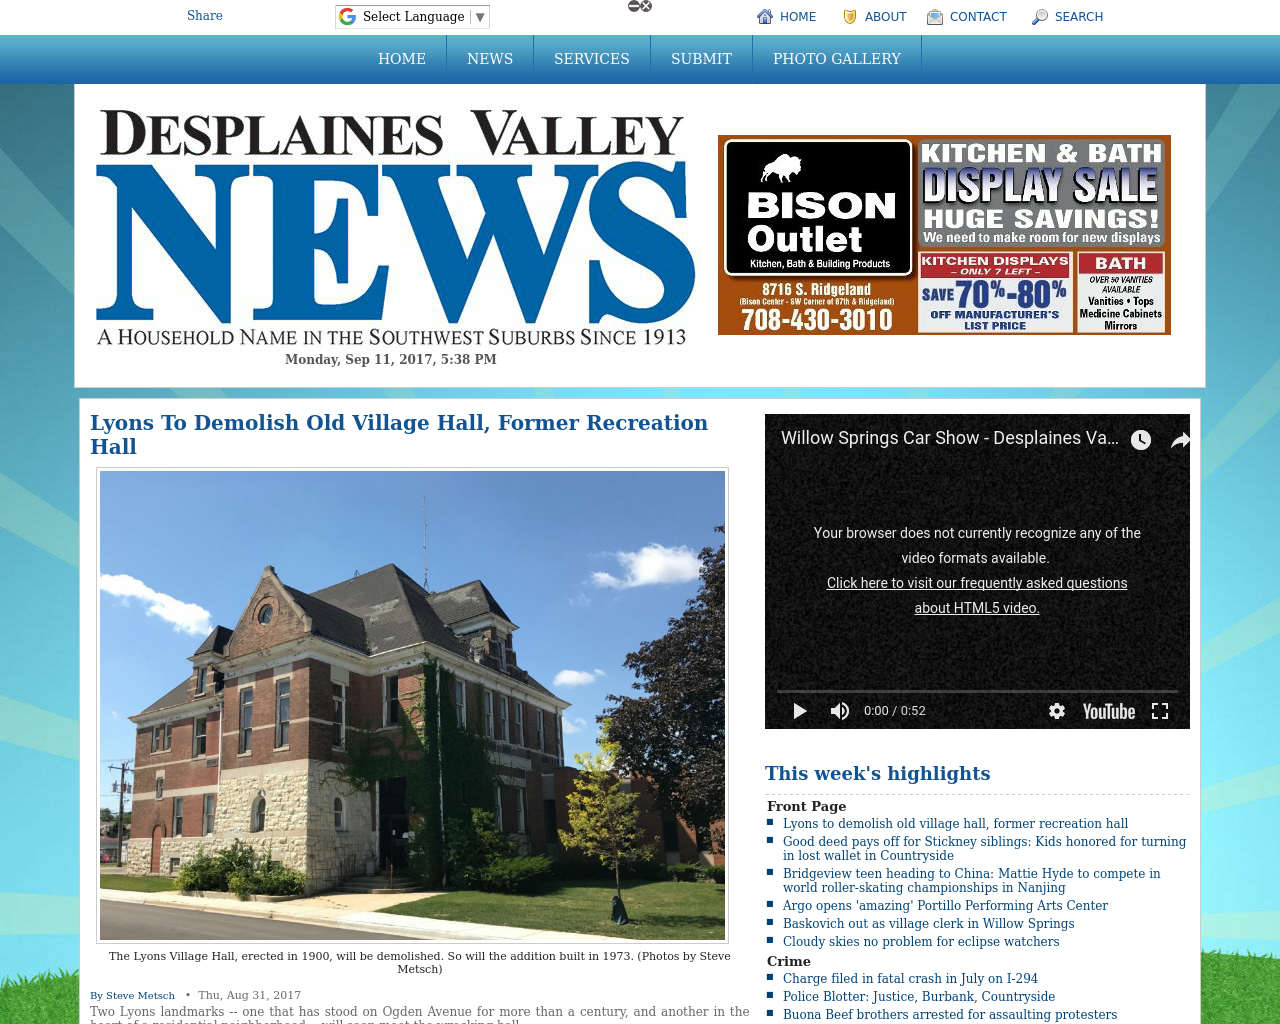 Desplaines-Valley-News-Advertising-Reviews-Pricing